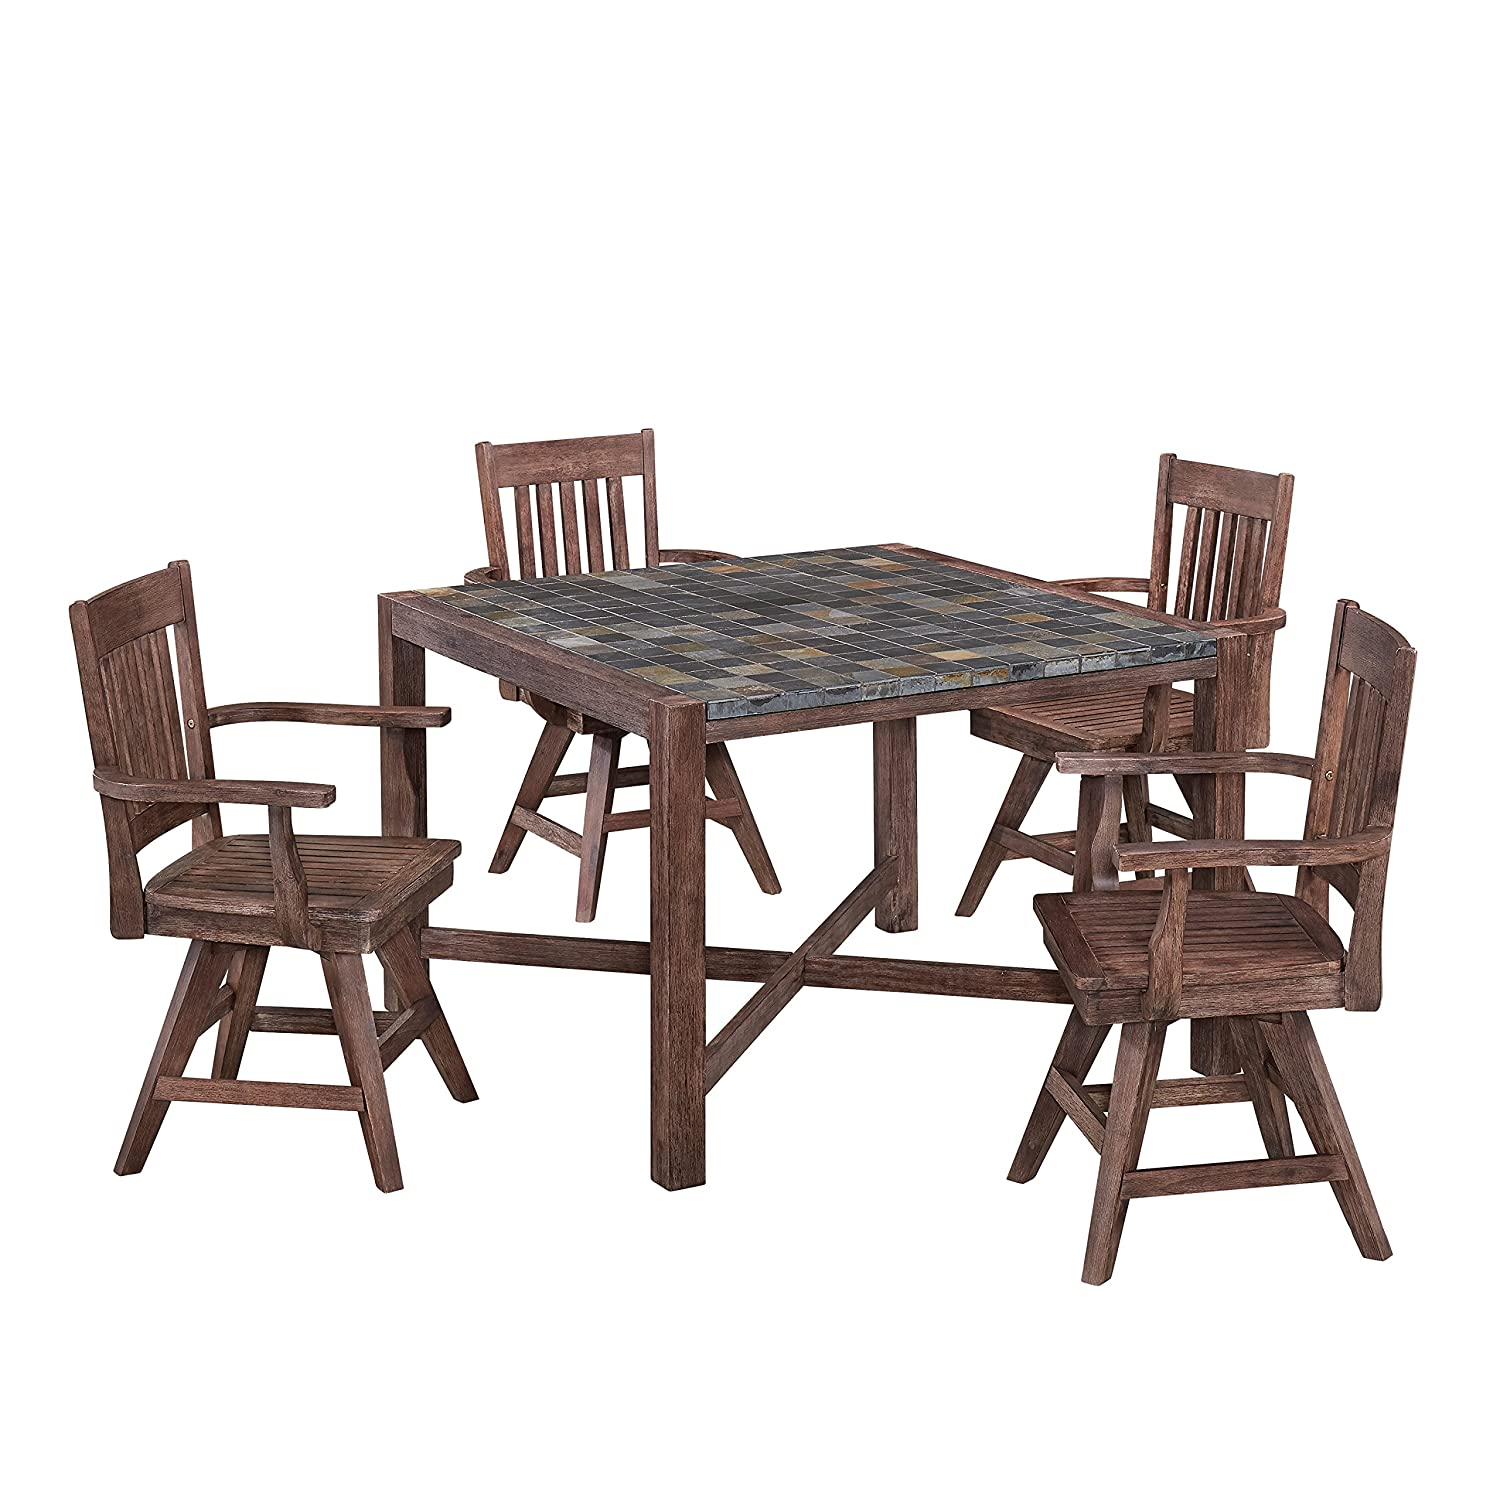 Awesome Morocco Dining Set With Square Table And Four Swivel Chairs By Home Styles Camellatalisay Diy Chair Ideas Camellatalisaycom